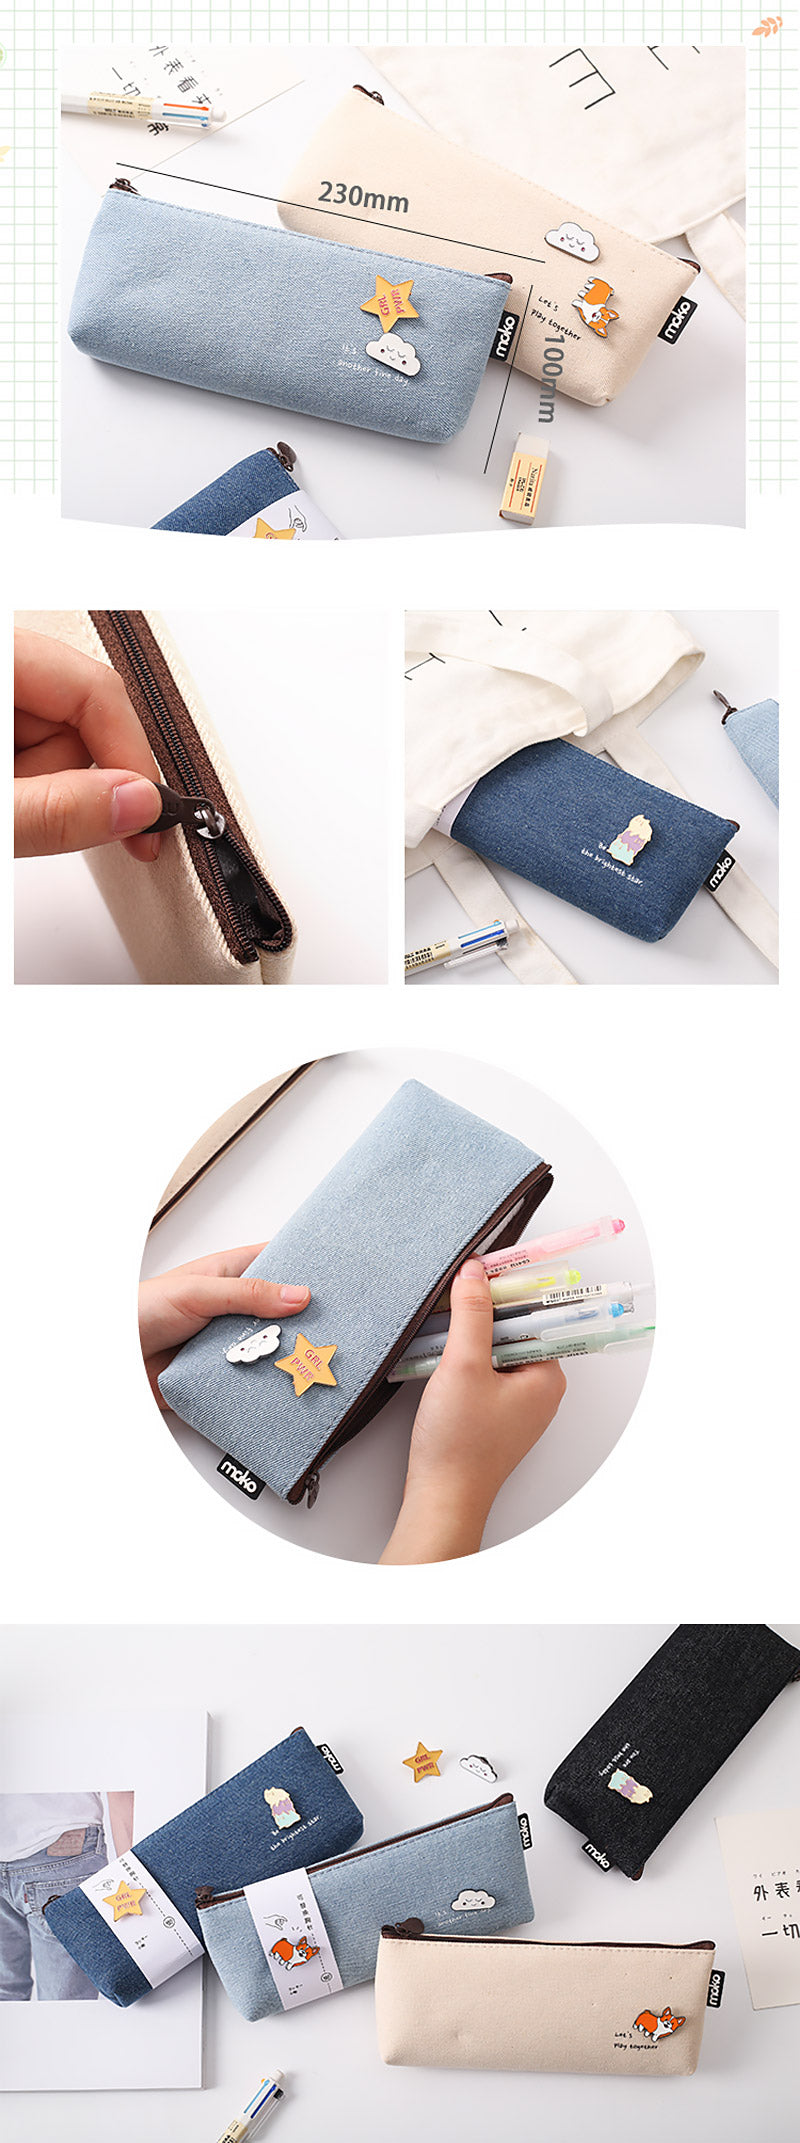 Canvas Pencil Pouch with Brooch - Detail